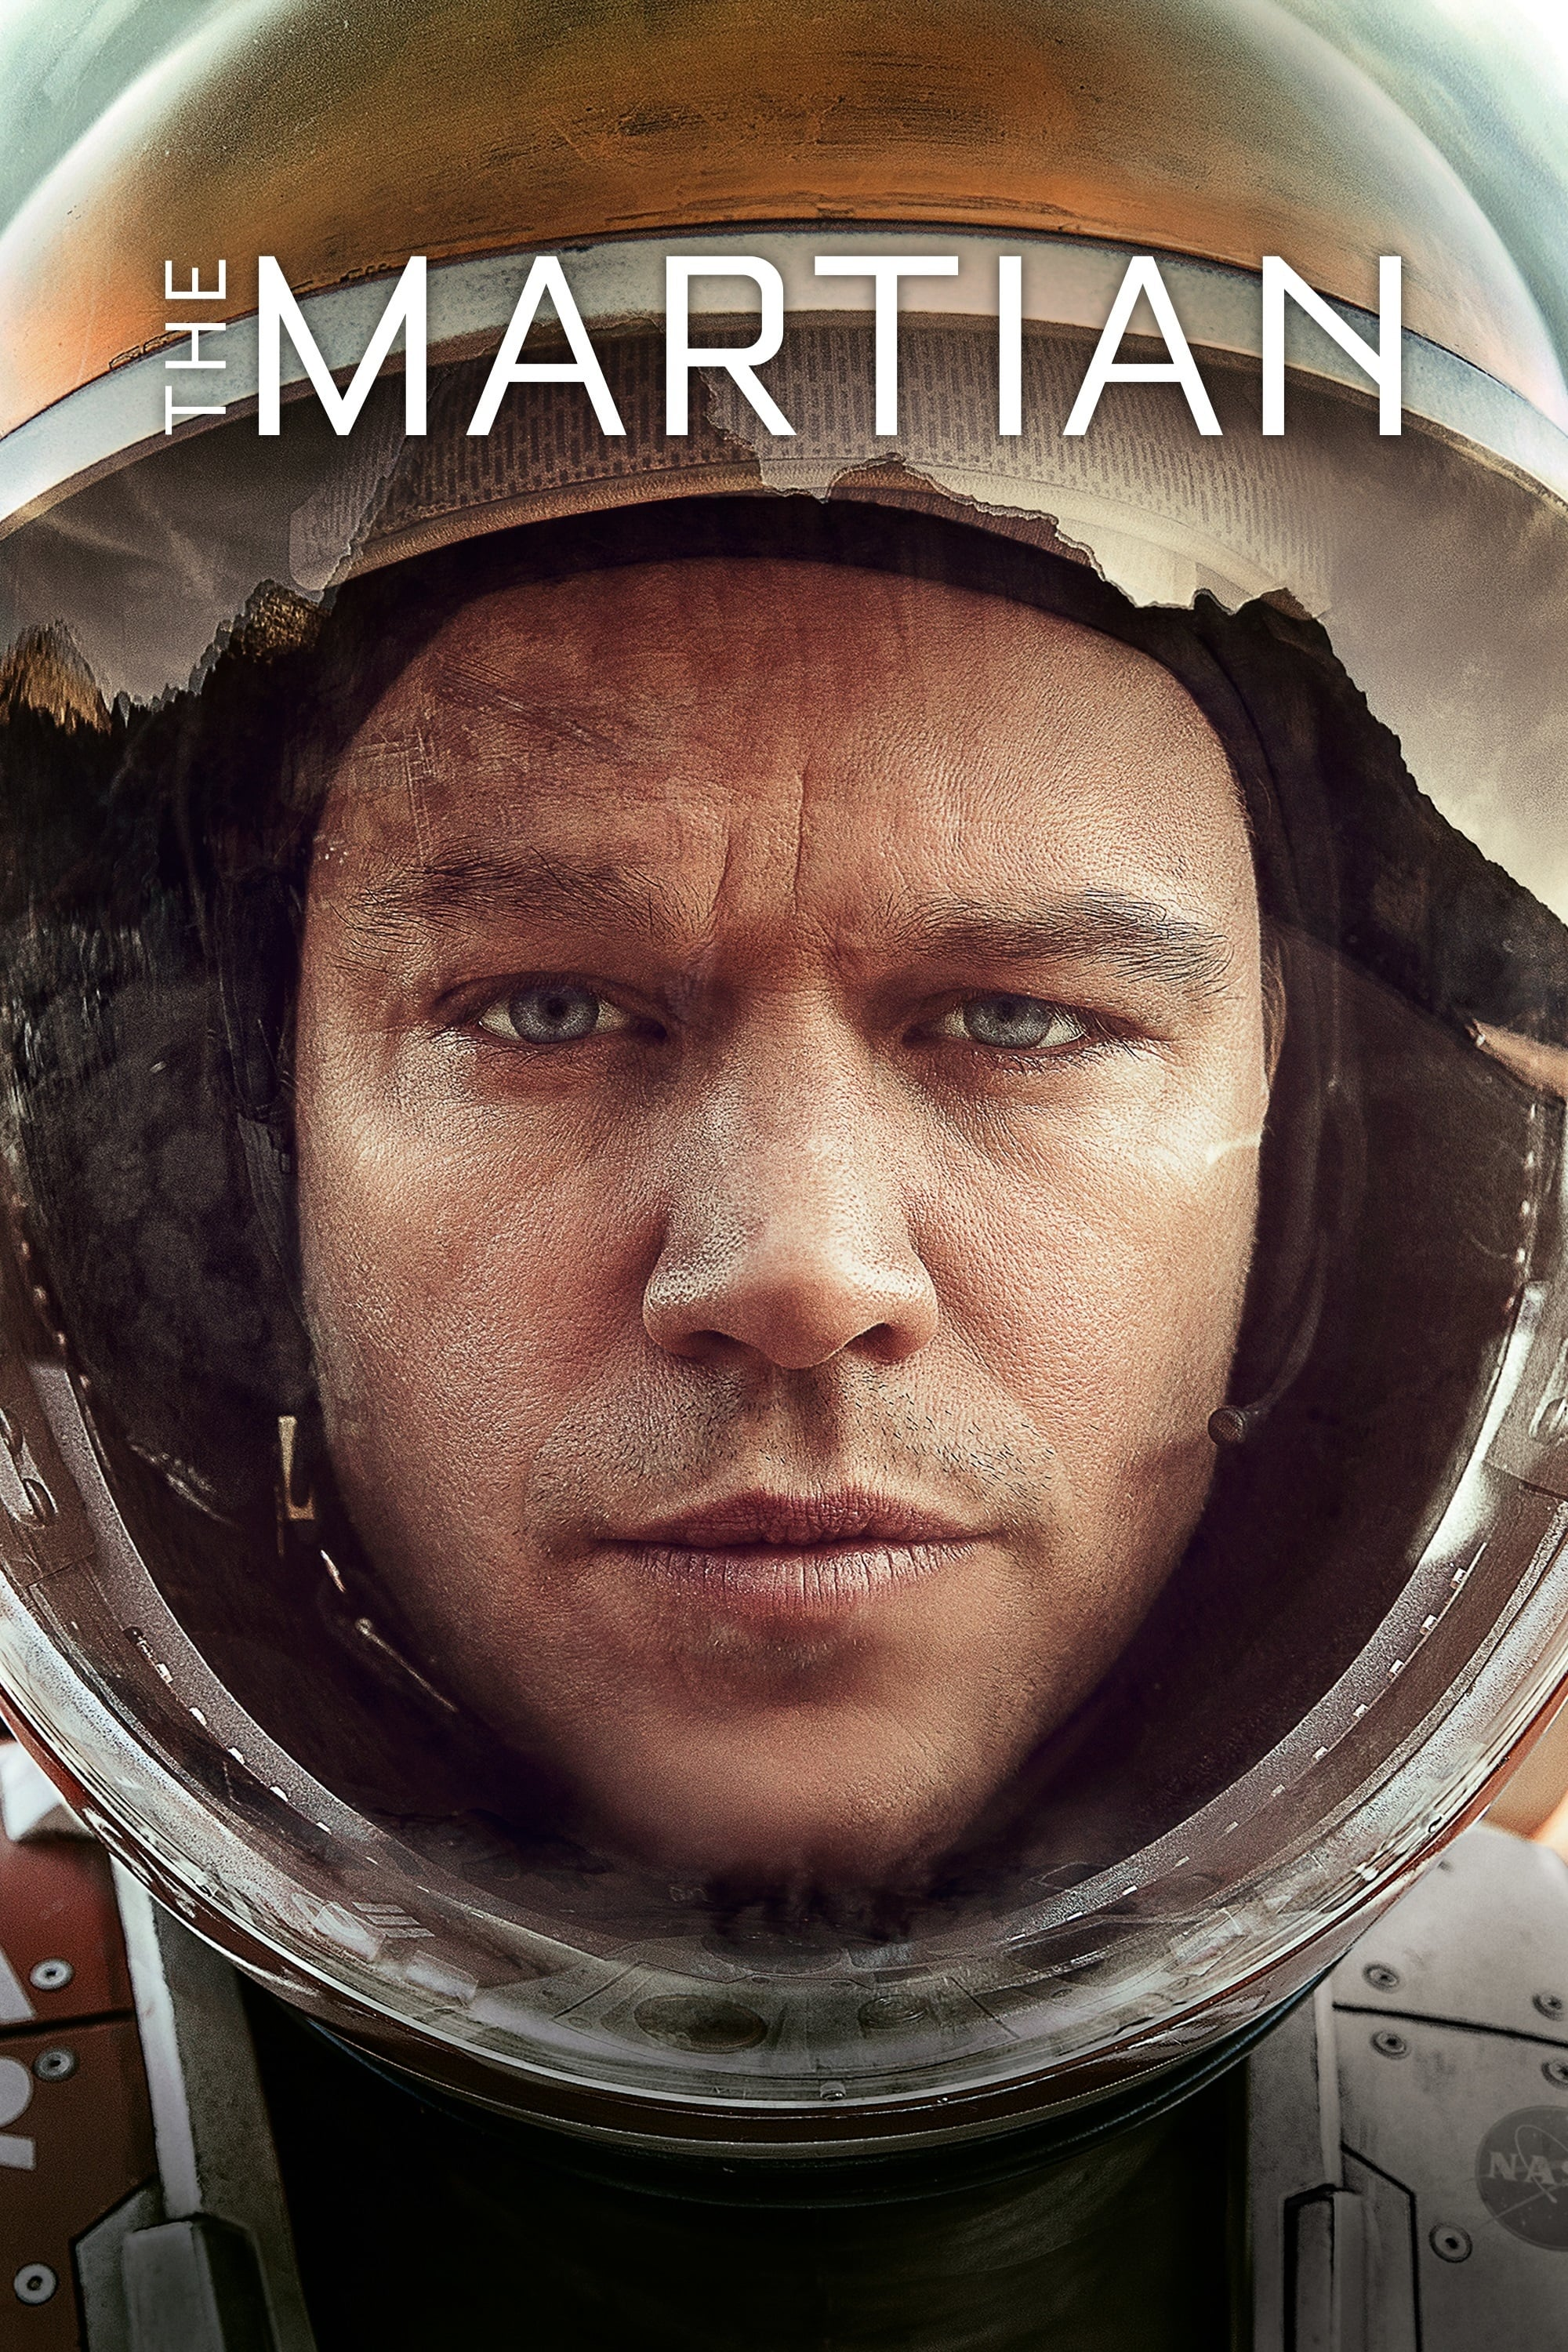 Poster and image movie Film Martianul - Marțianul - The Martian - The Martian -  2015